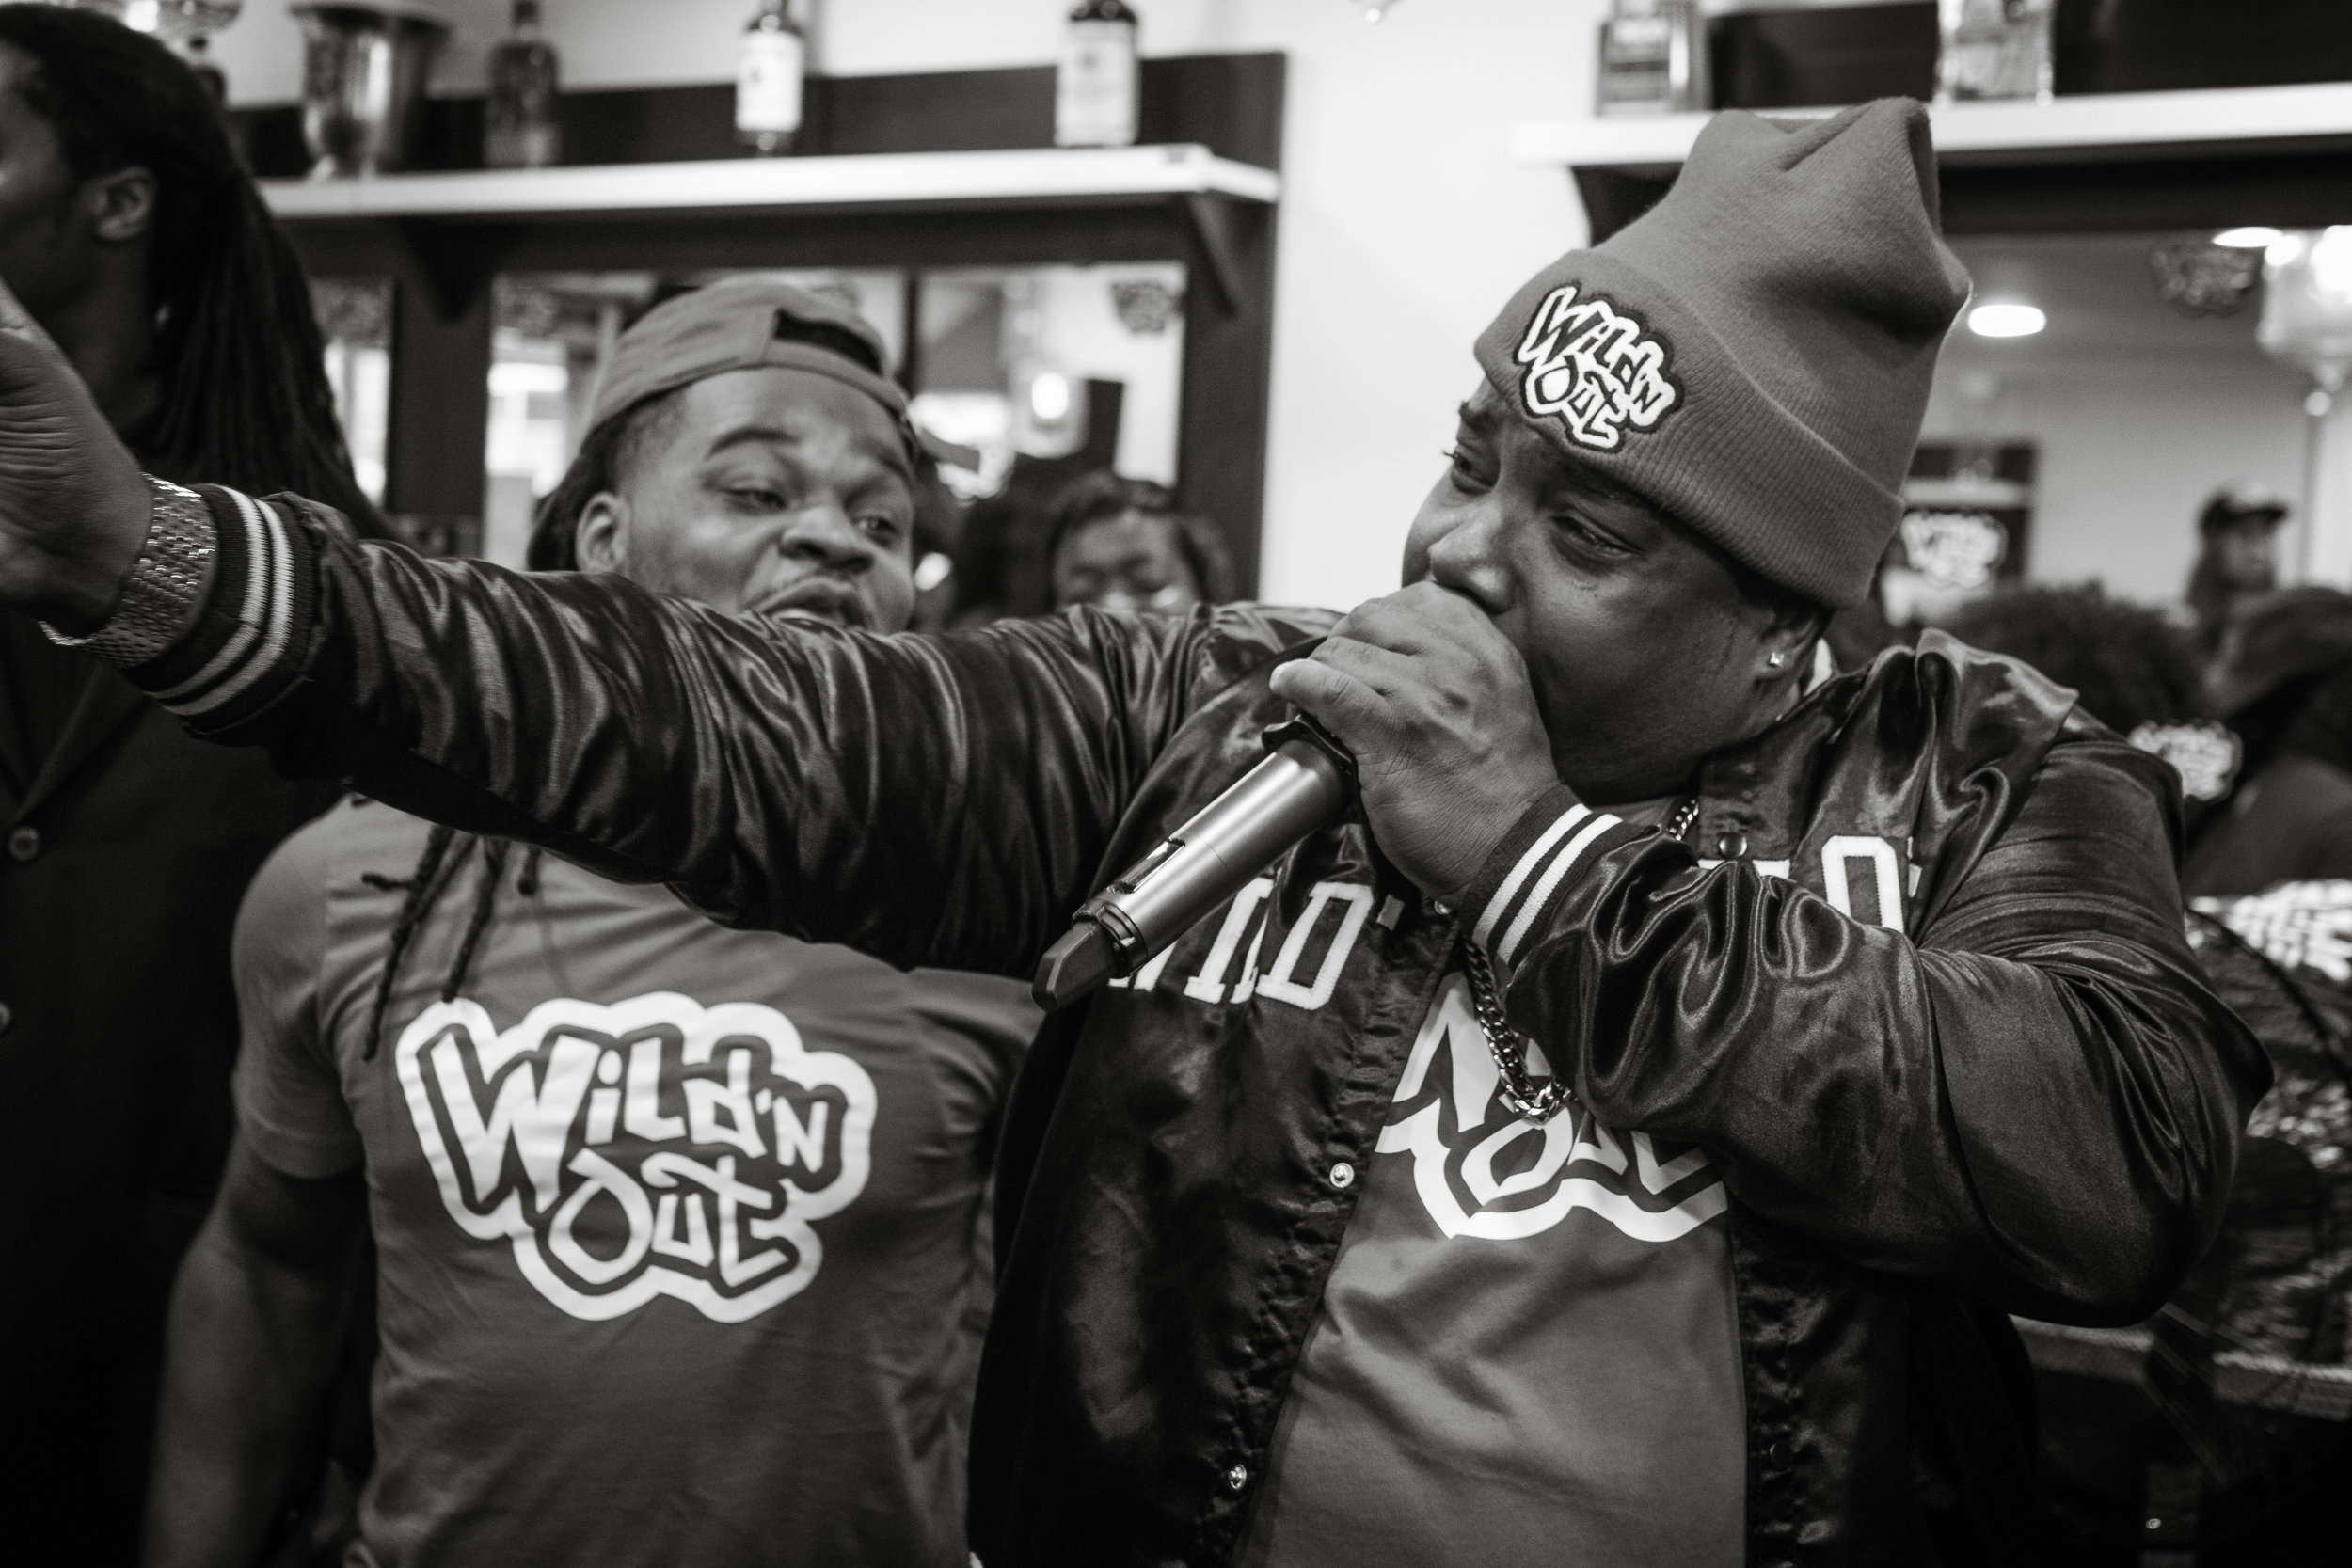 Wildn out-10.jpg